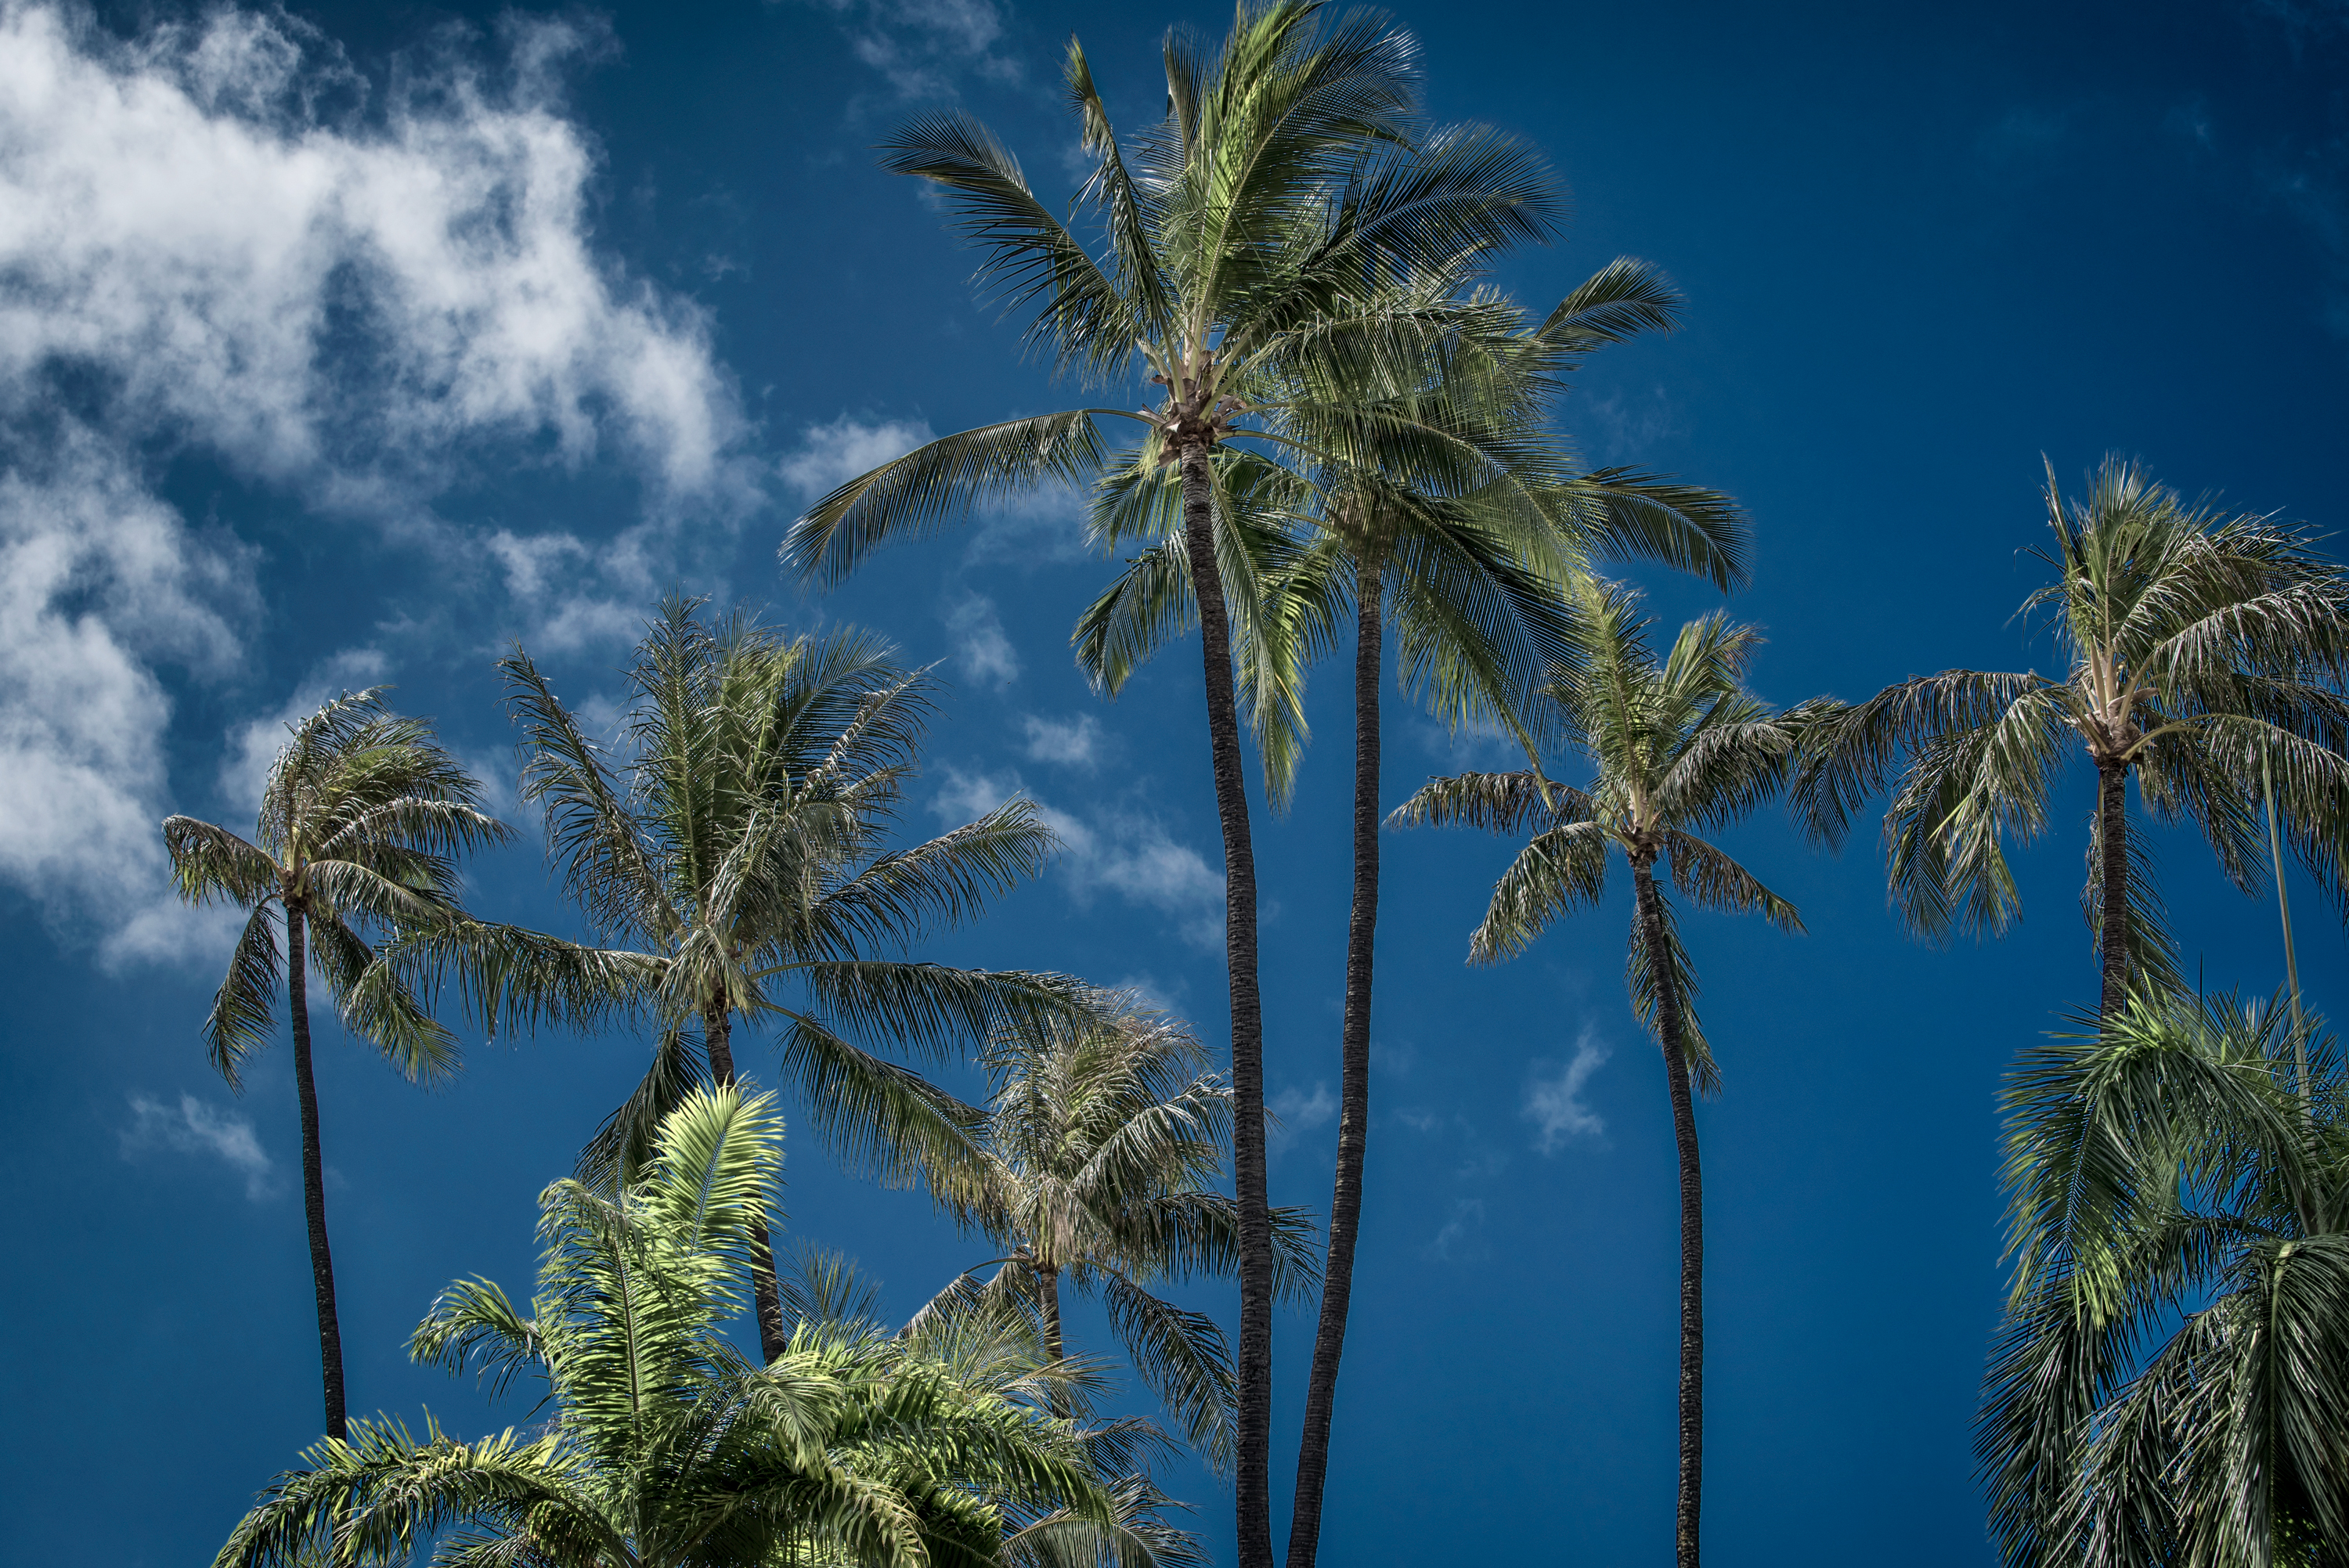 Bluesky and Palmtrees